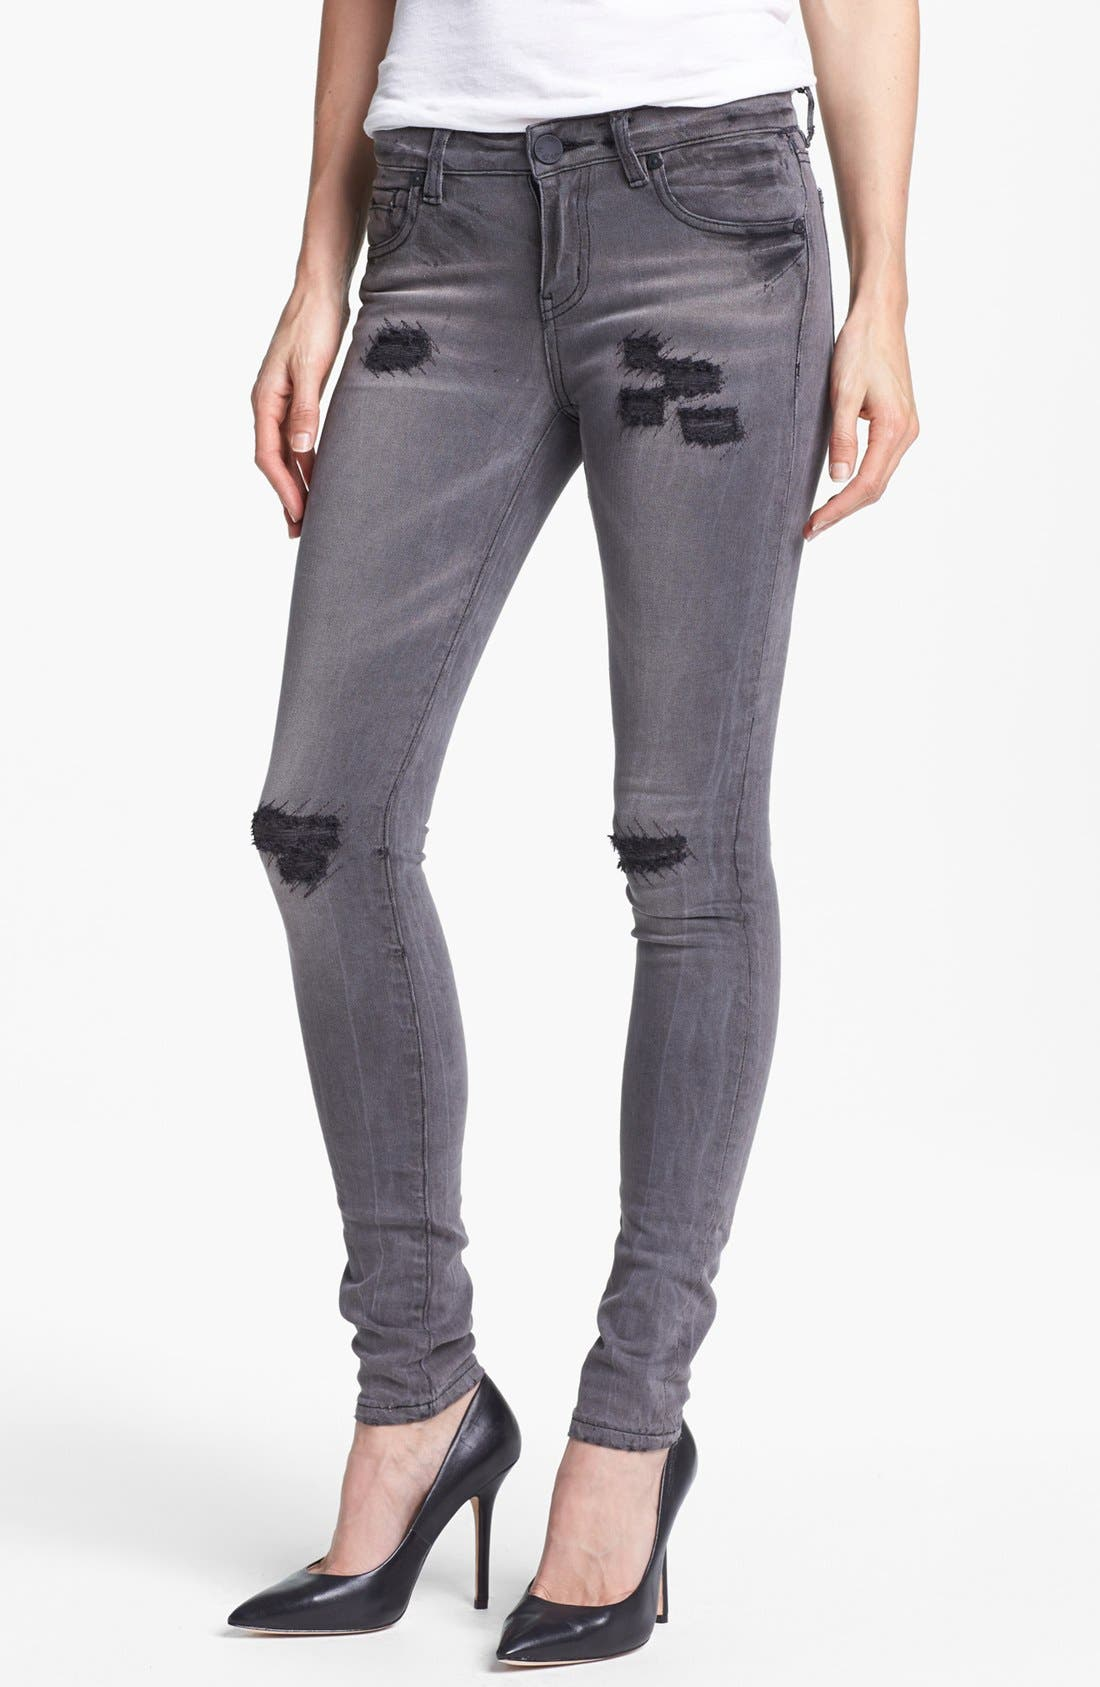 Alternate Image 1 Selected - KUT from the Kloth 'Mia' Stretch Skinny Jeans (Simulating)